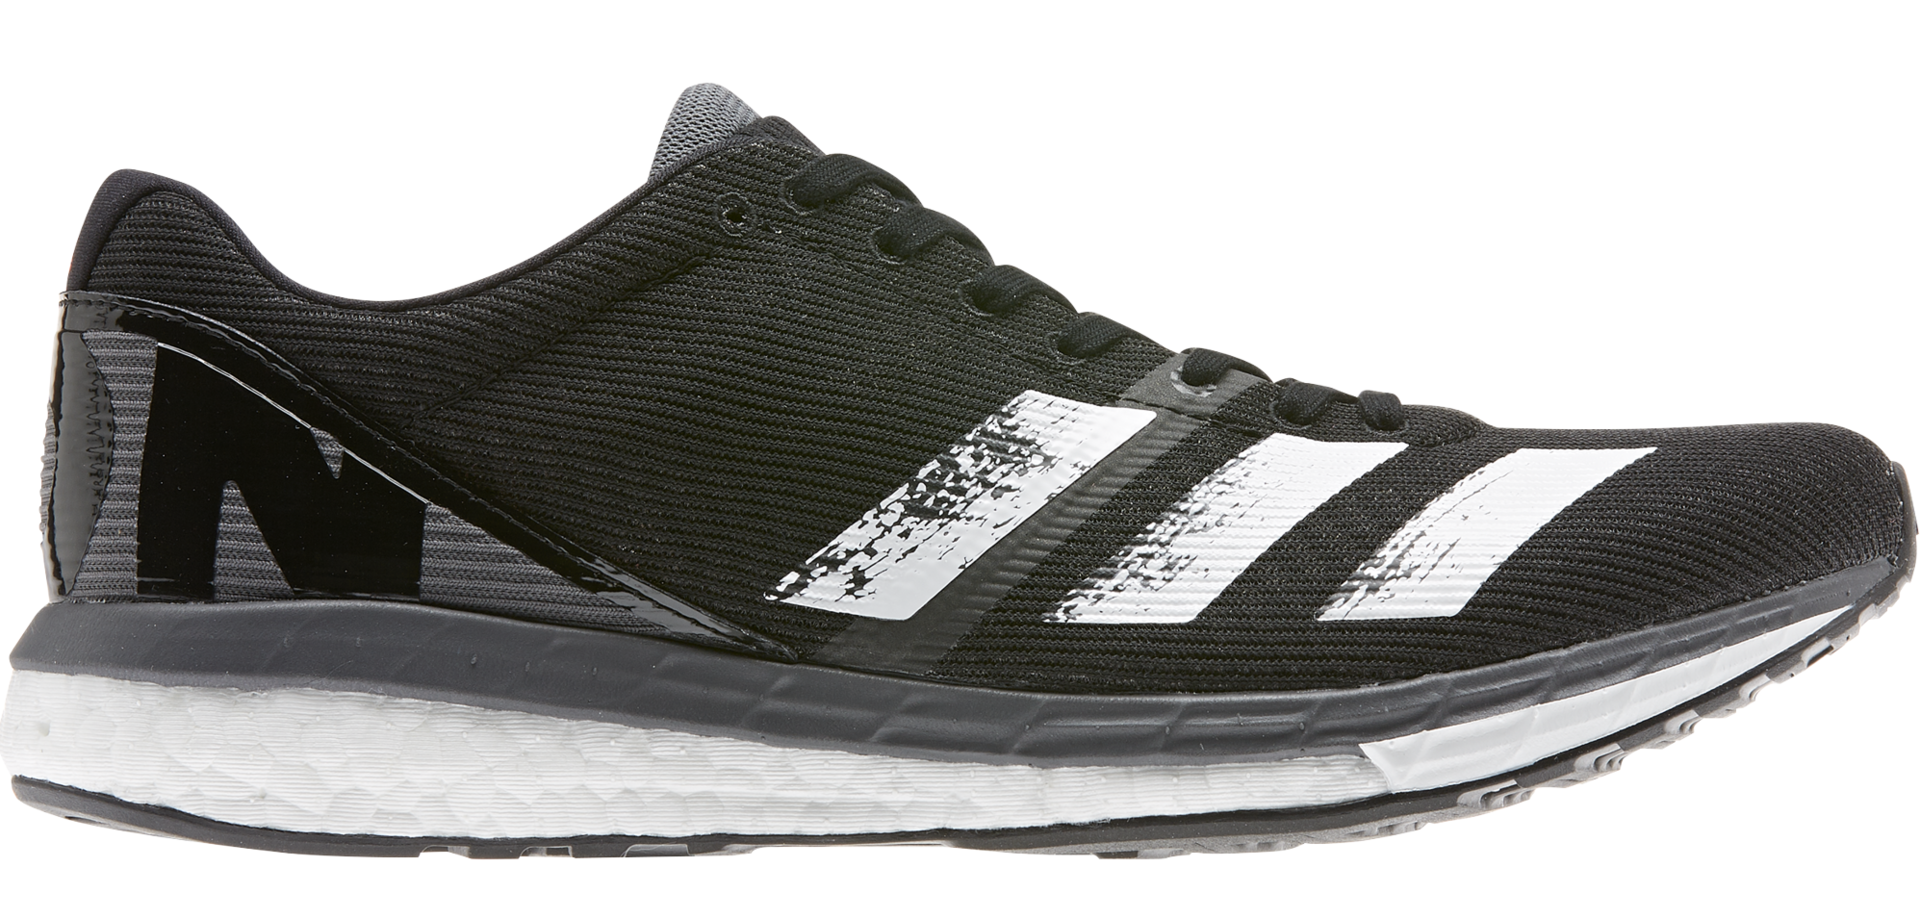 ADIDAS Adizero Boston 8 Schoenen | Perrysport